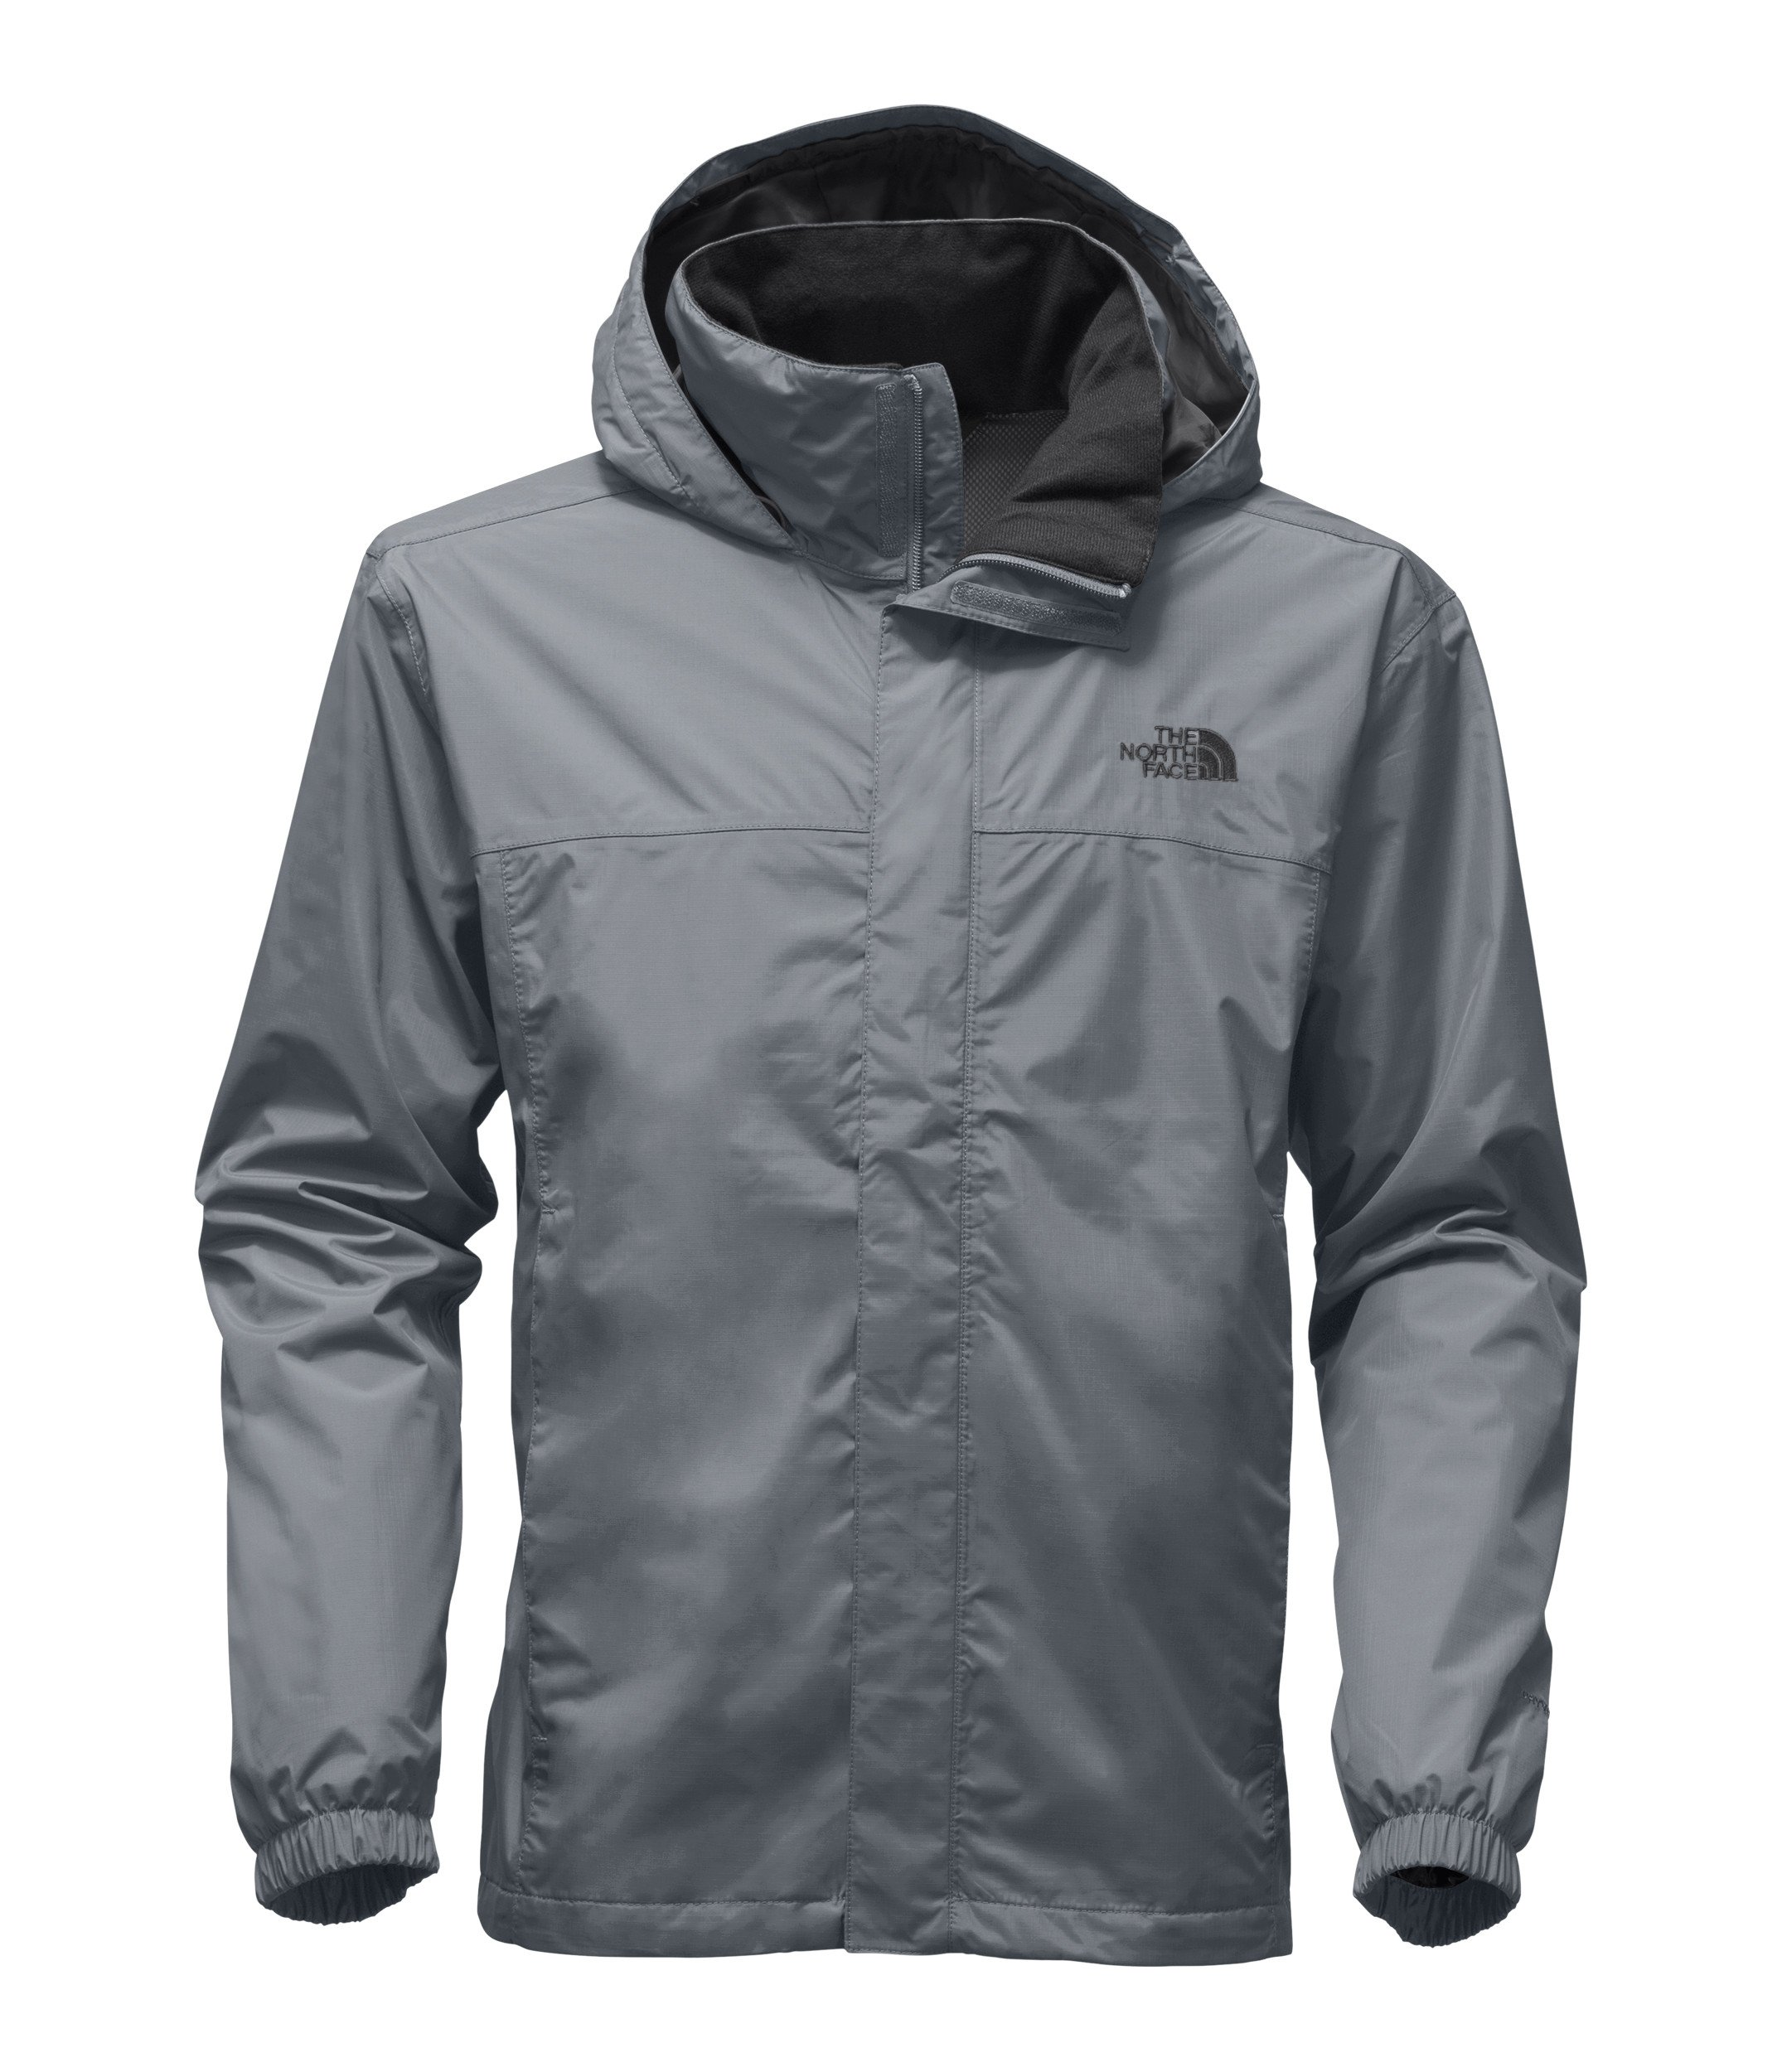 The North Face Men's Resolve 2 Jacket - Mid Grey & Mid Grey - L by The North Face